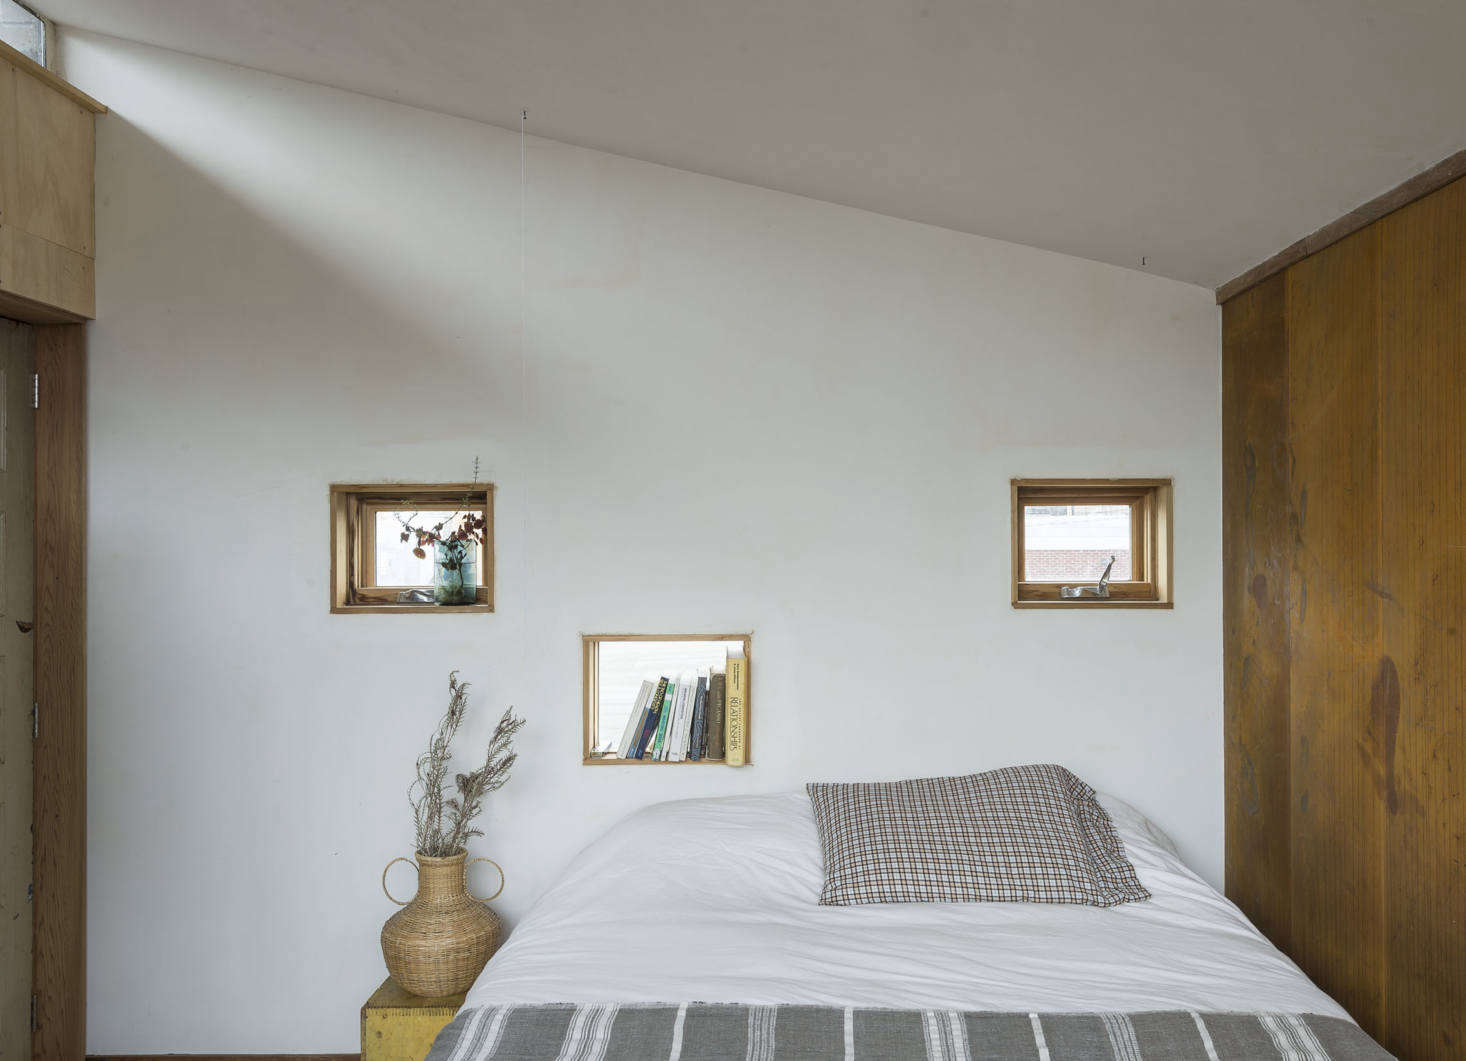 The bedroom wall is made of concrete blocks; the Sierra Pacific windows are slotted into a trio of voids.